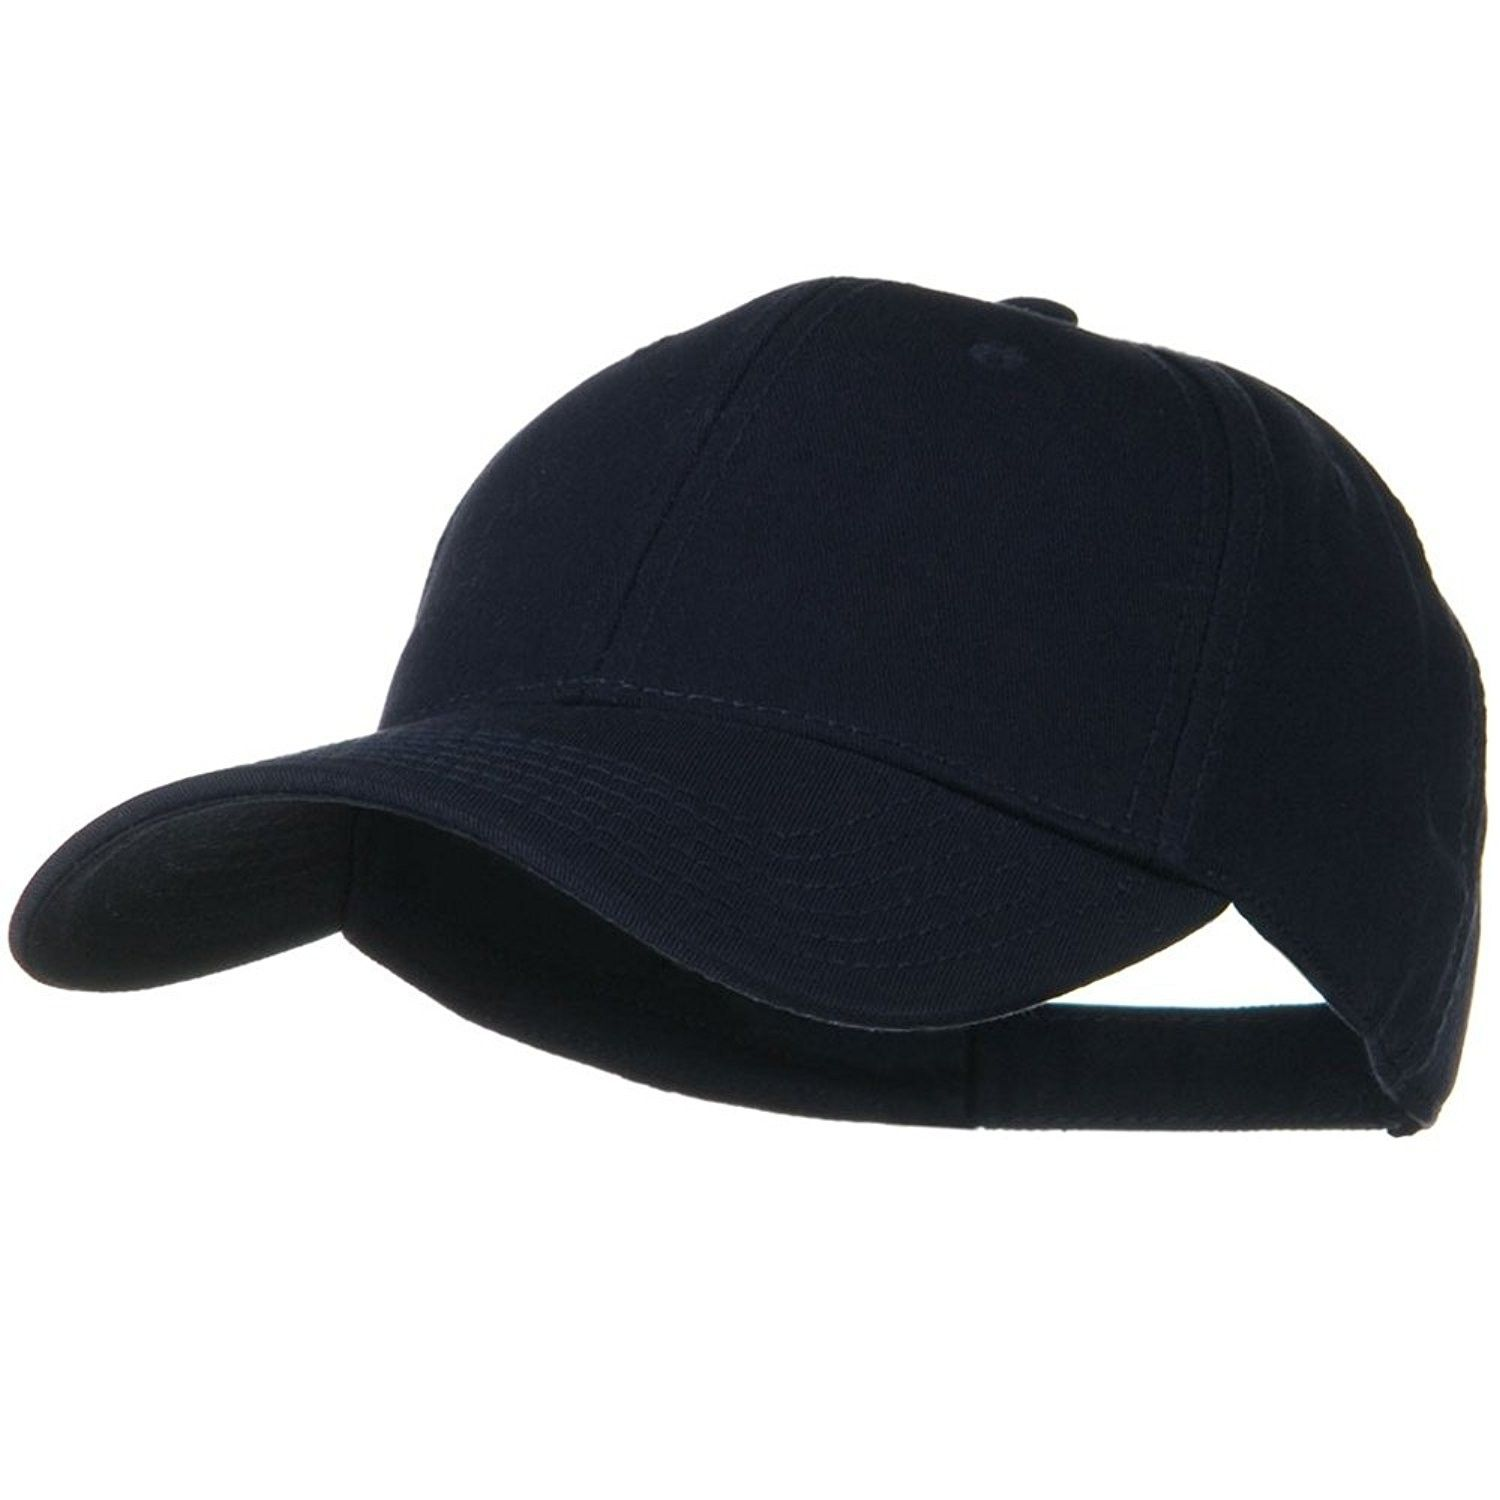 Superior Cotton Twill Low Profile Strap Cap - Navy Blue - CZ11918E1QD - Hats    Caps 19a87c4bc13